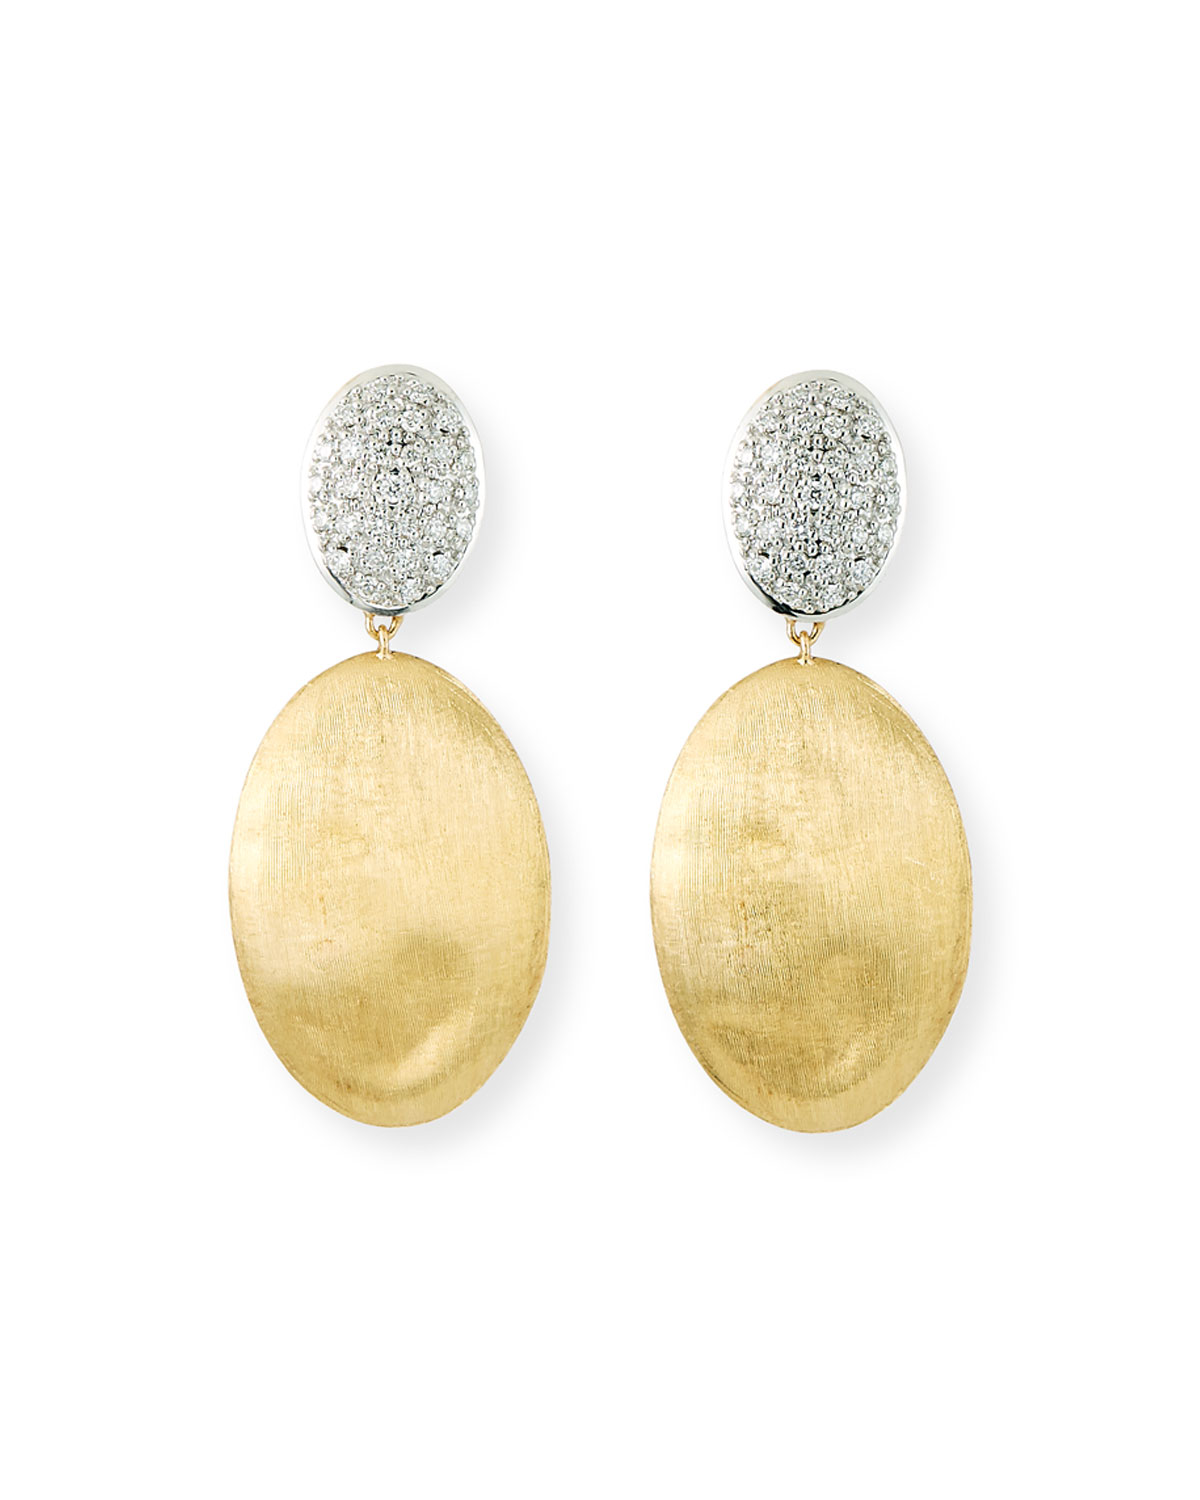 Marco Bicego Siviglia 14k Gold Bead Large 2-Drop Earrings with Diamonds